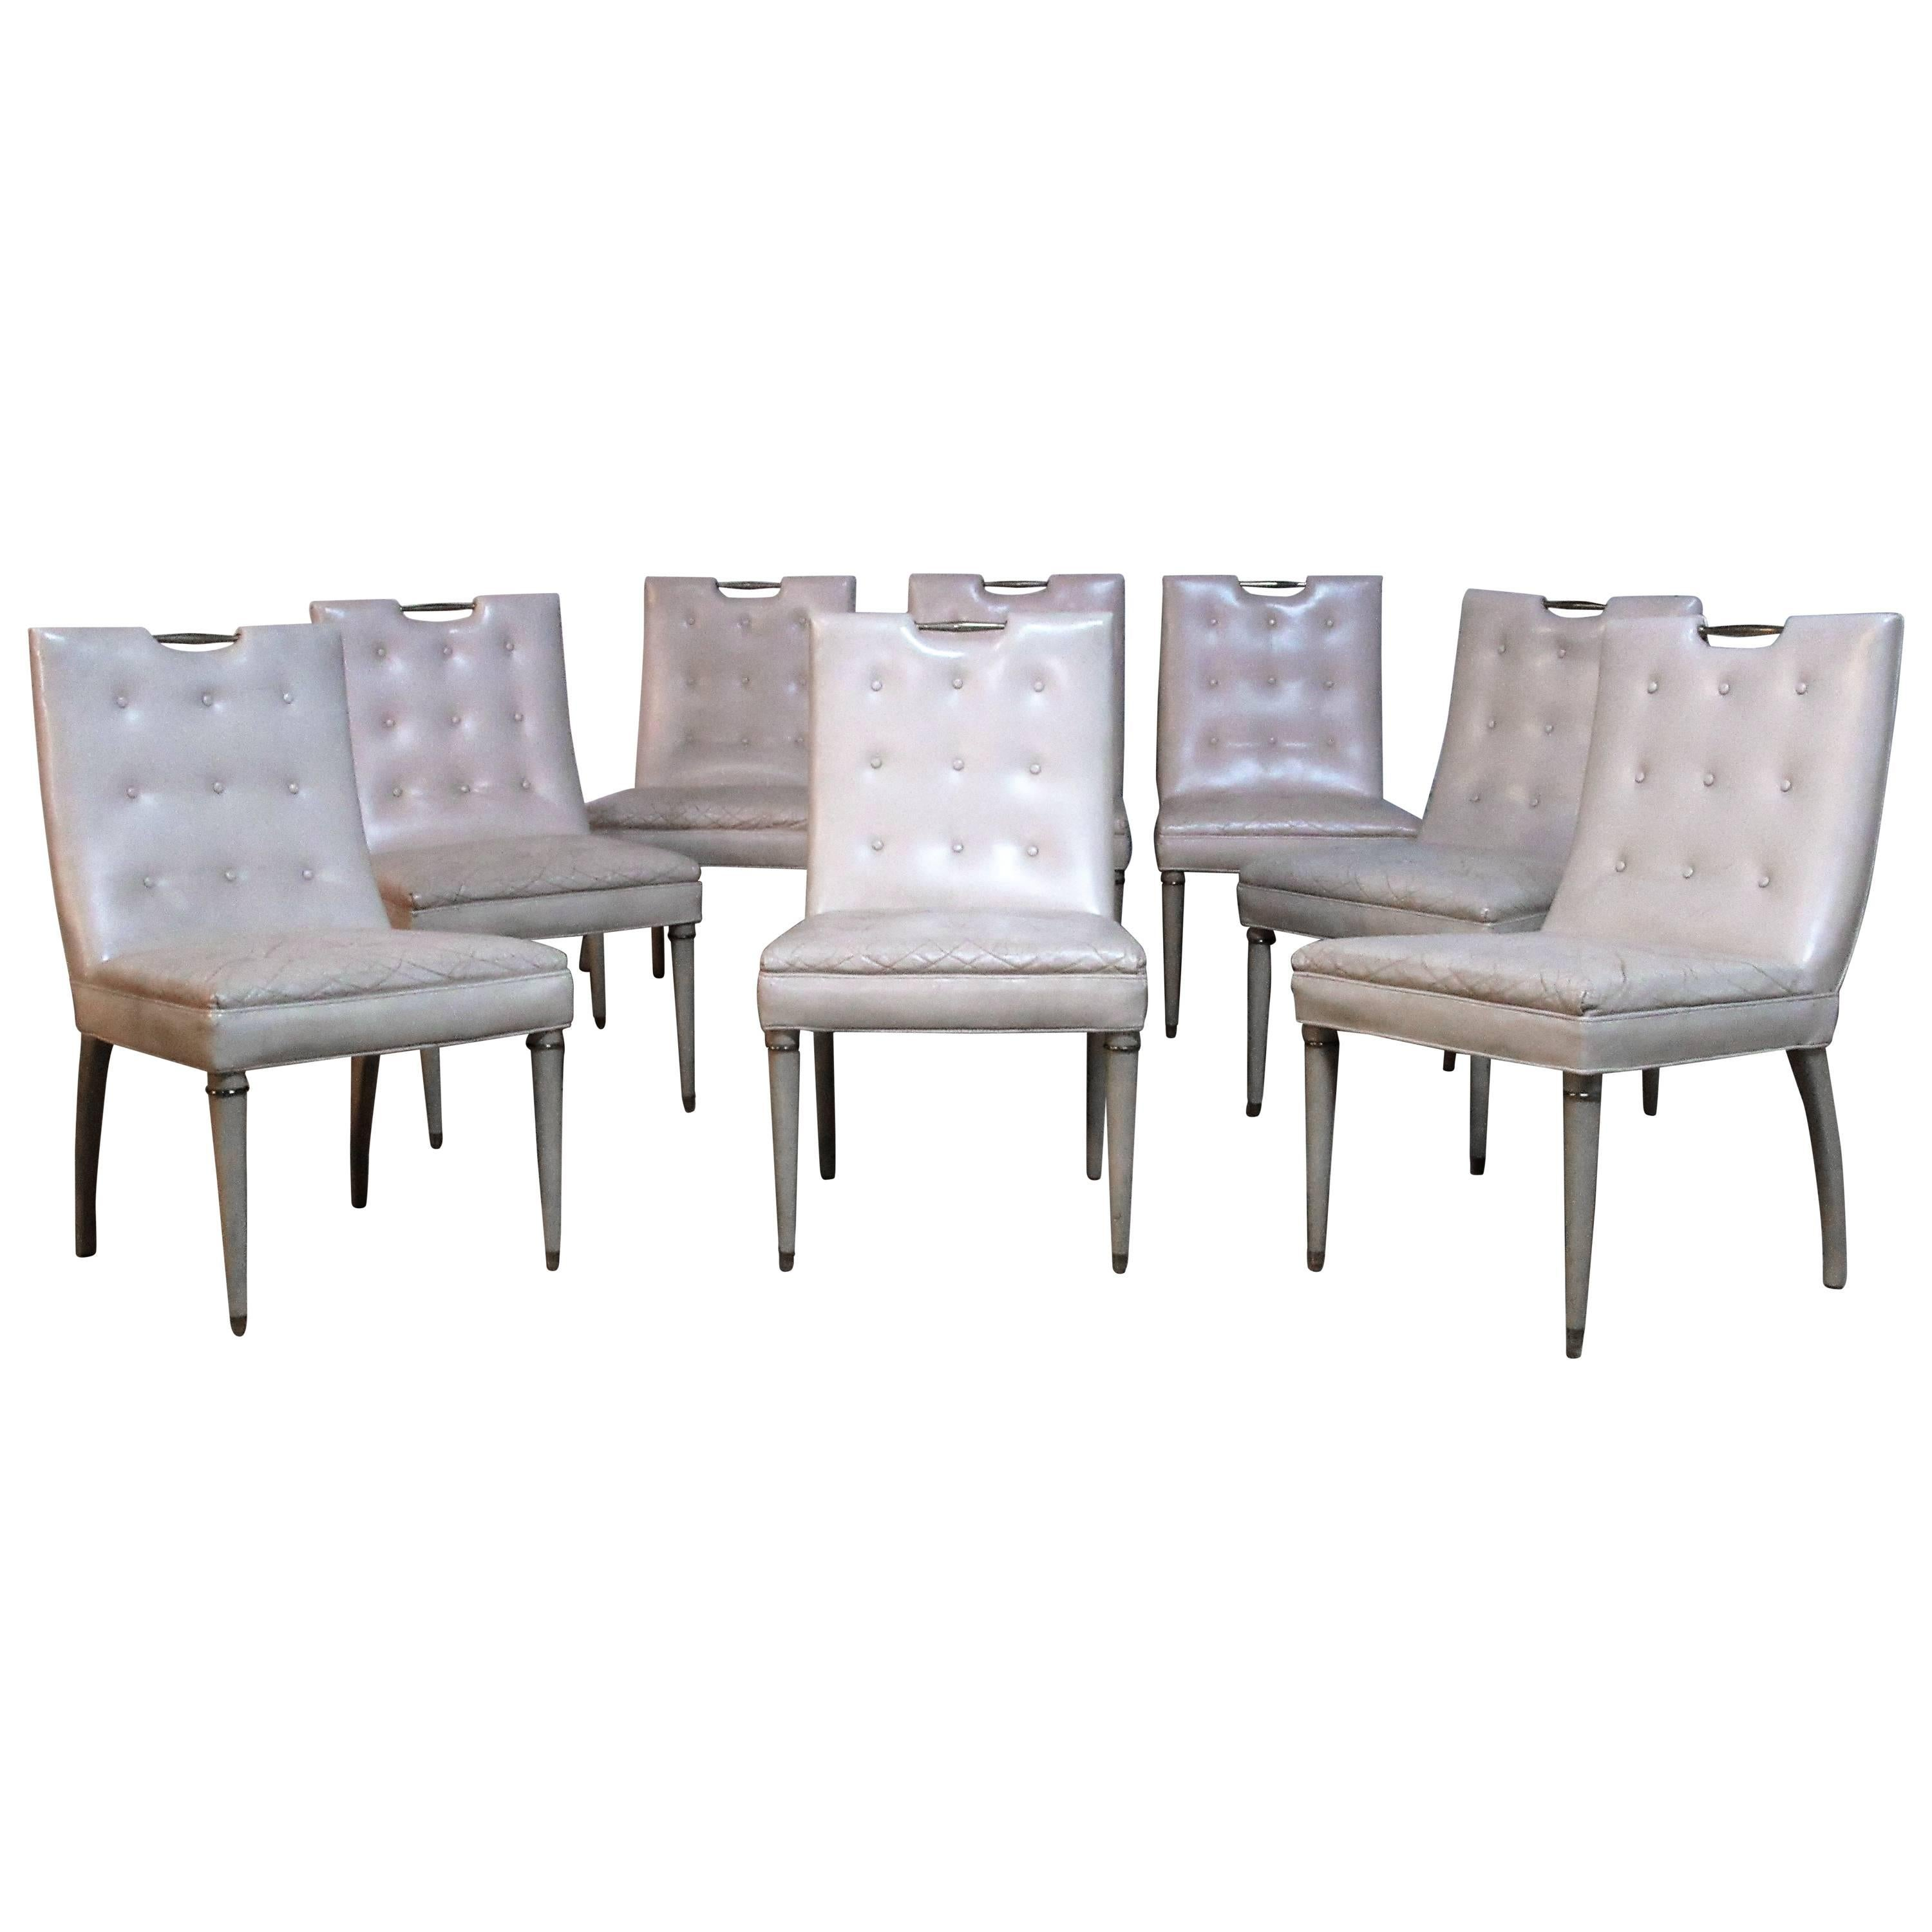 9a77082ef9d Hollywood Regency Dining Chairs